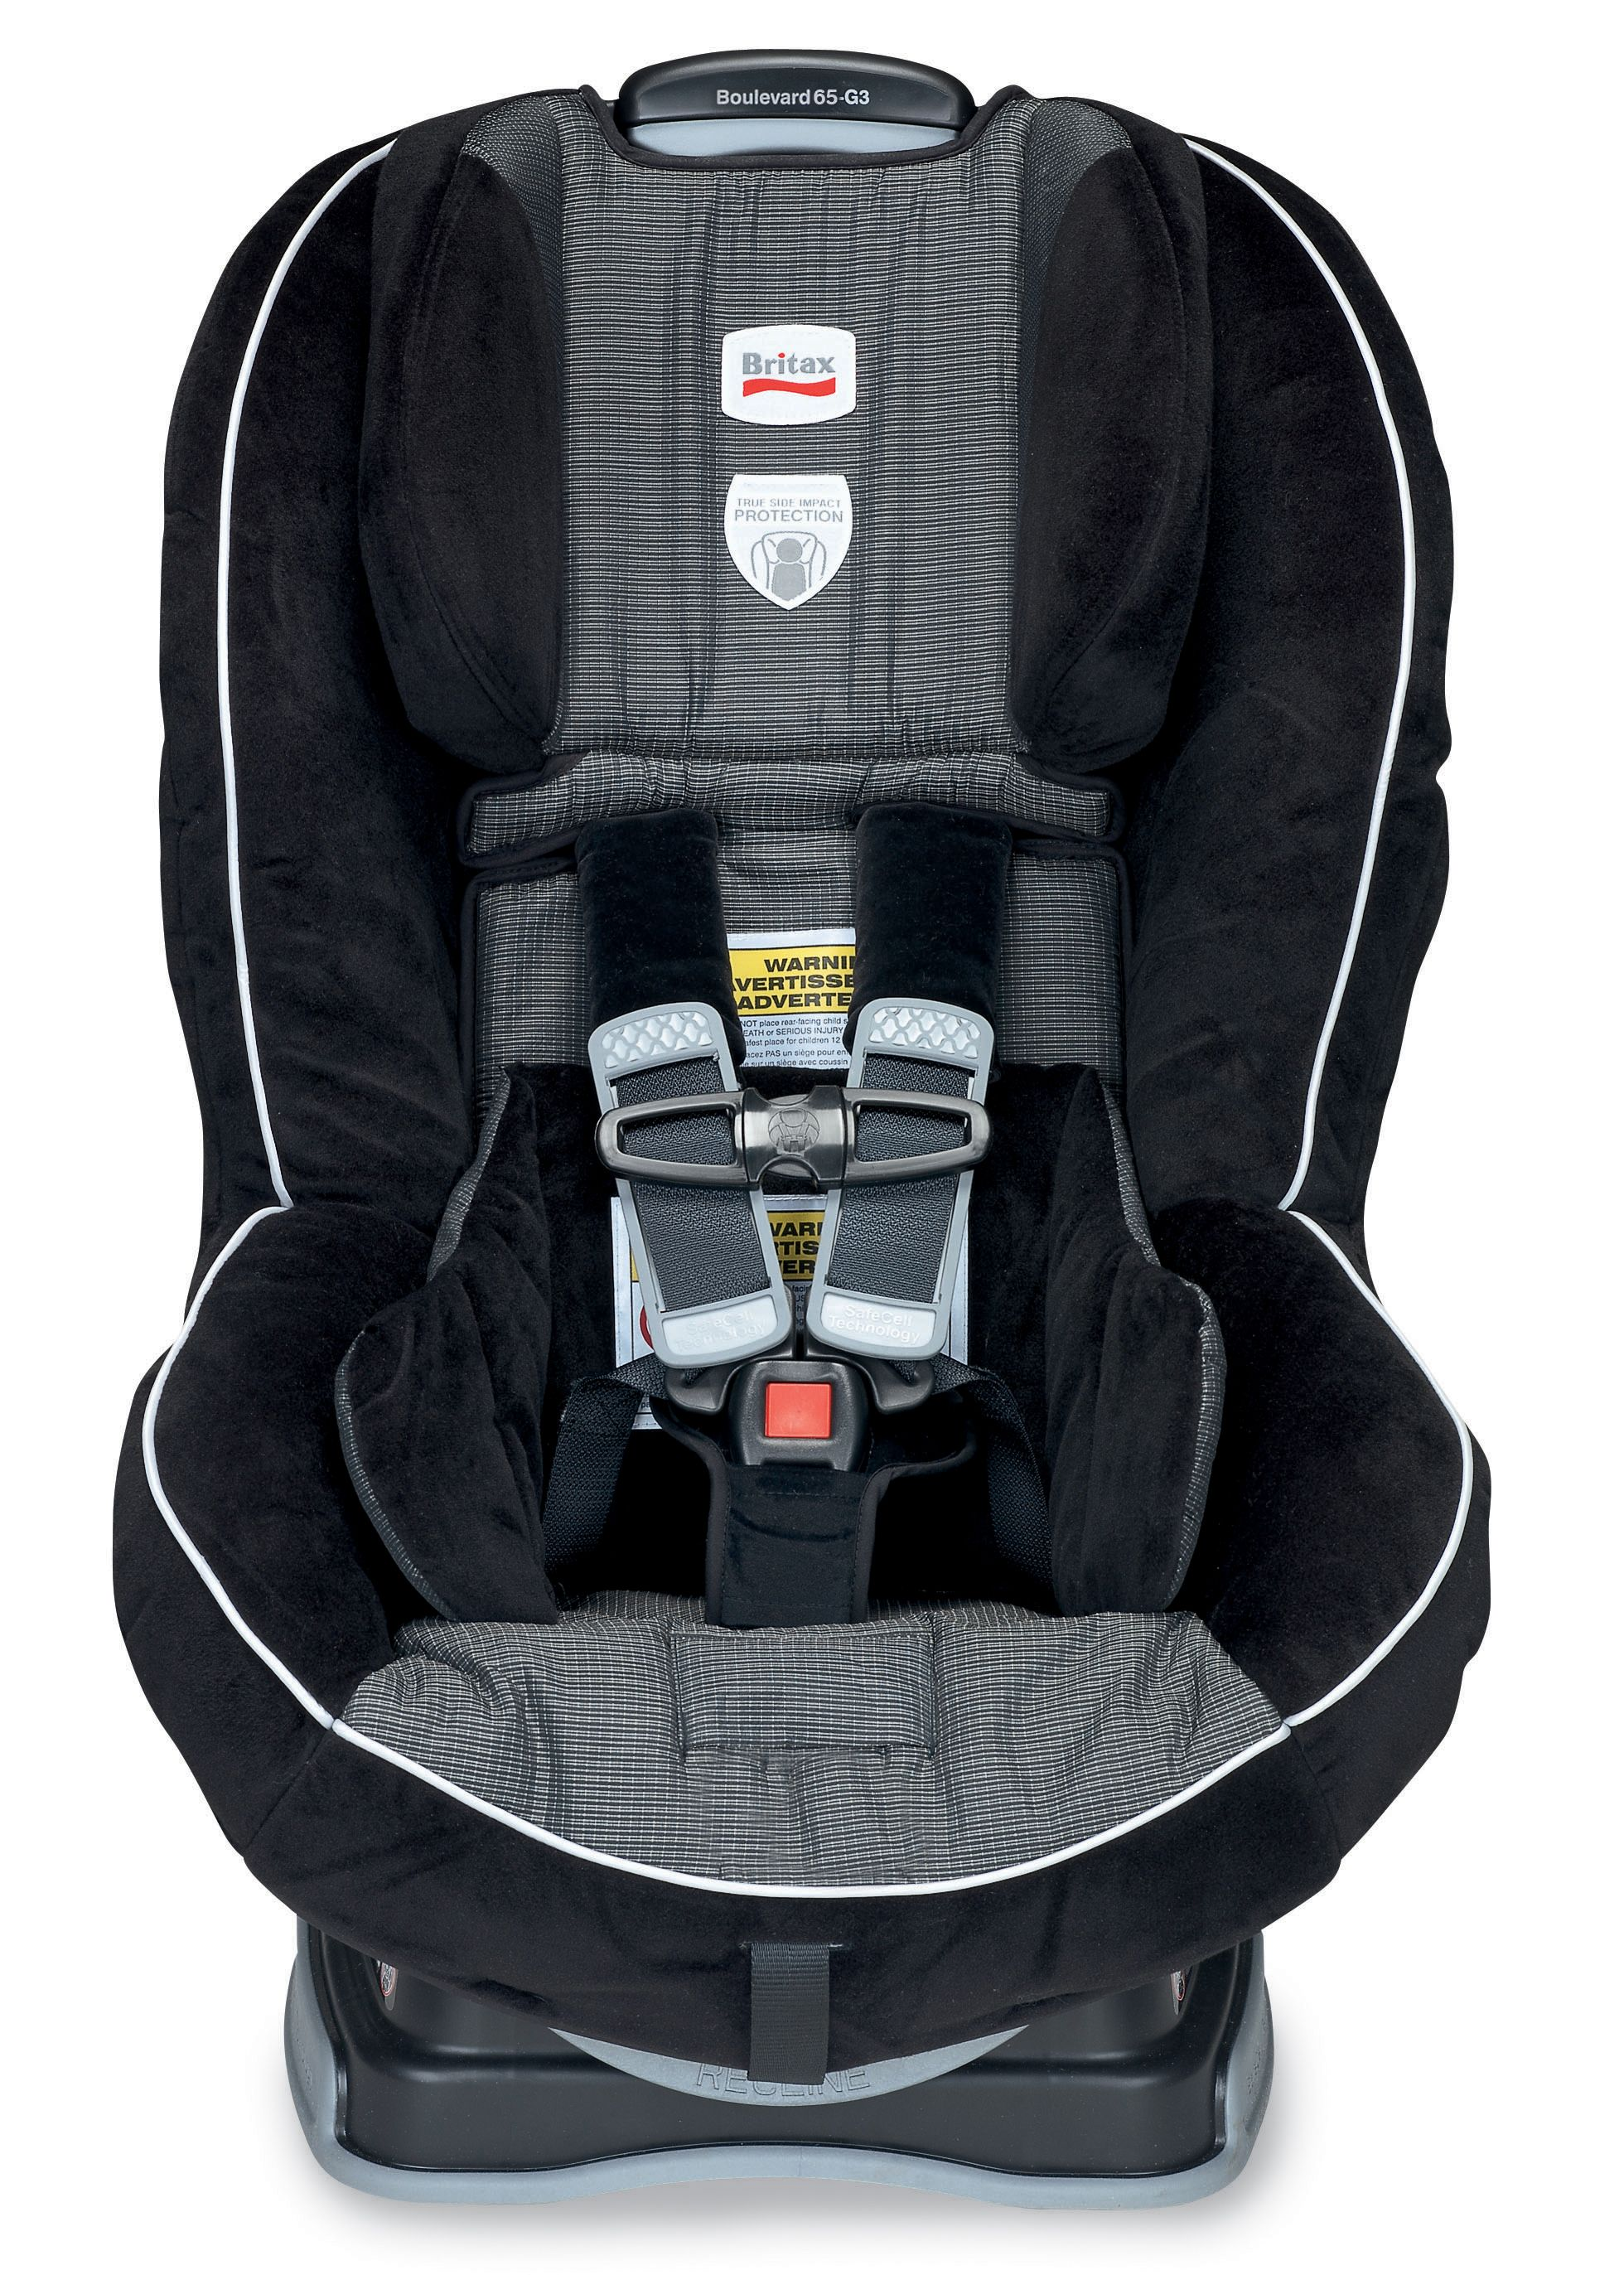 Britax USA Car Seats & Strollers Car seats, Best car